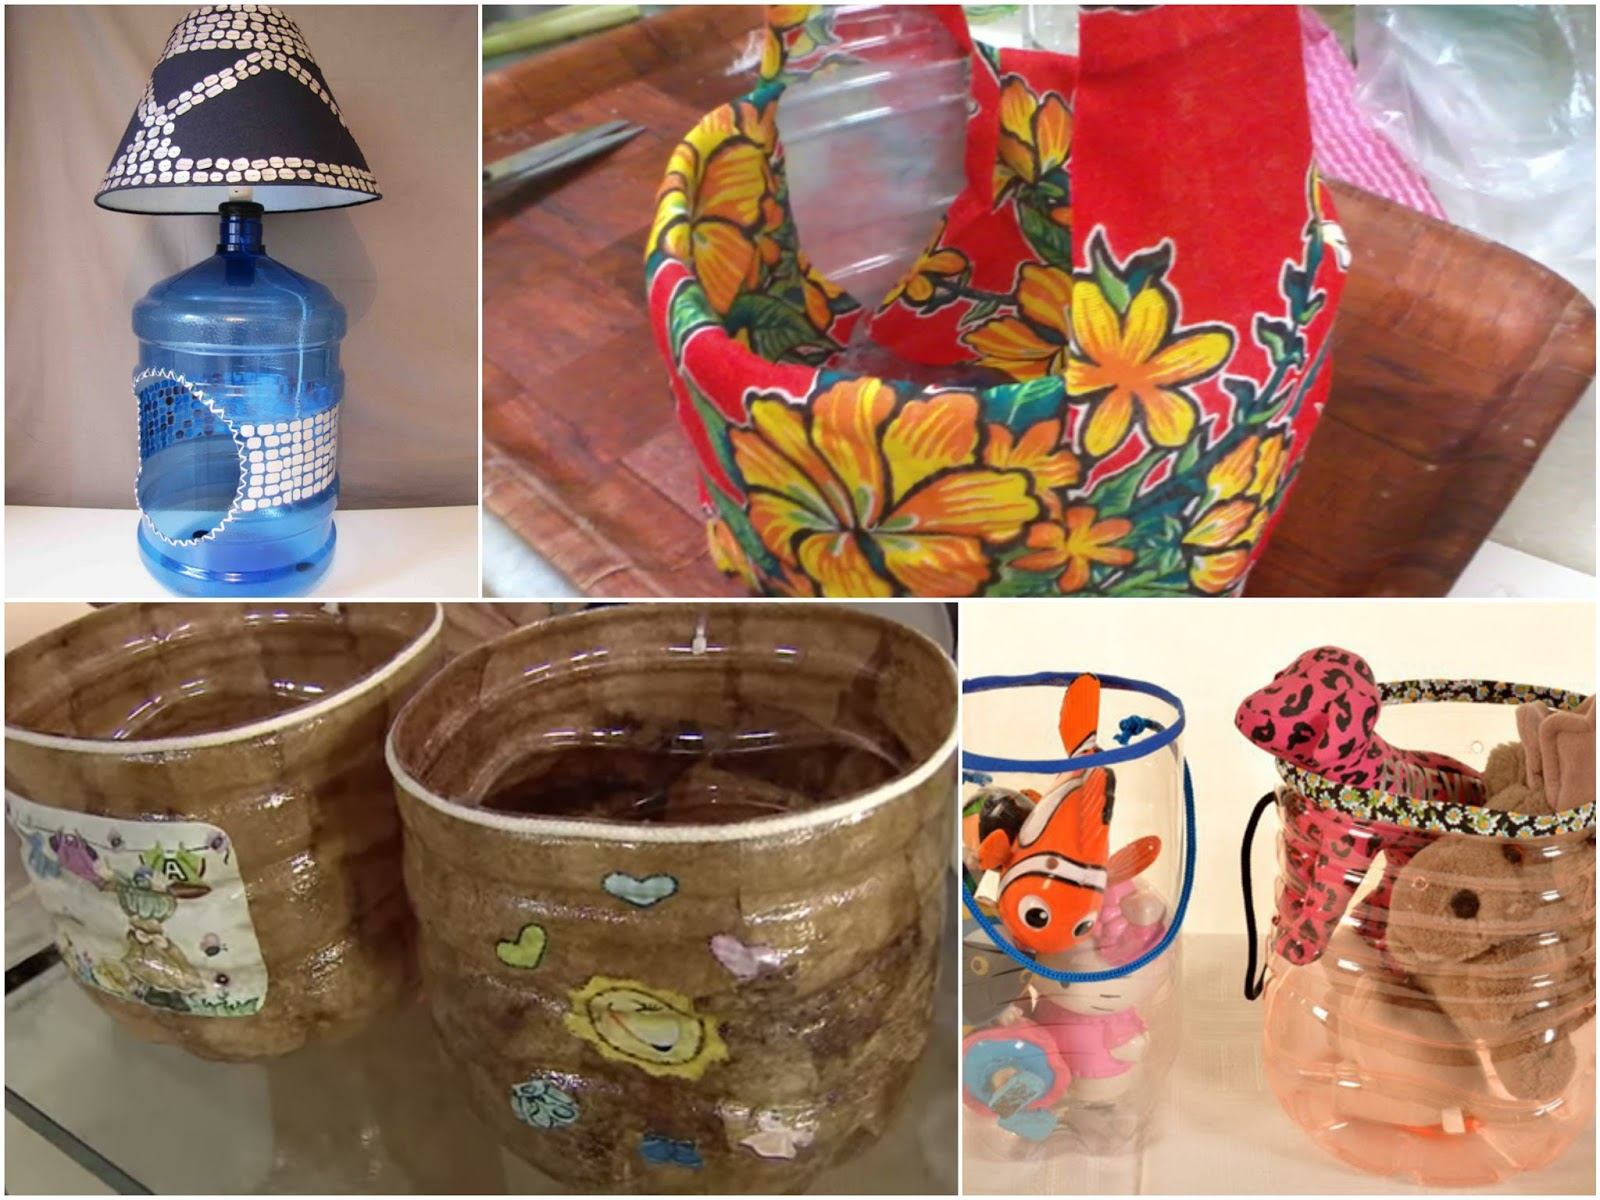 15 ideas de manualidades reciclando garrafones de agua for Ideas de decoracion reciclando